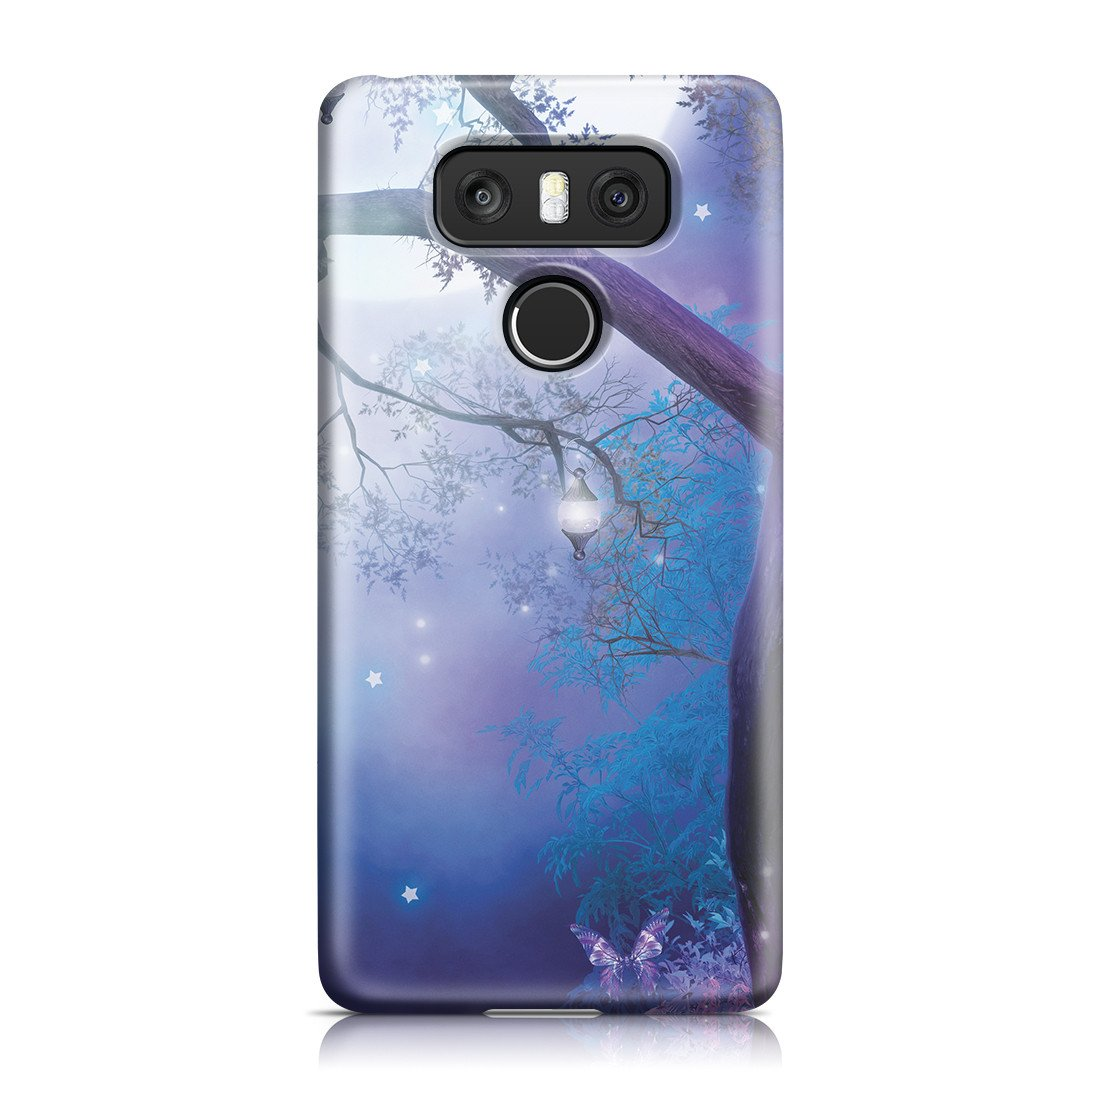 LG G6 Case - Moonlight Garden - High Resolution Graphics Printed with Non-Toxic Dye, Slim Profile while Still Guarding Against Impacts, Scratches and Debris (MATTE)